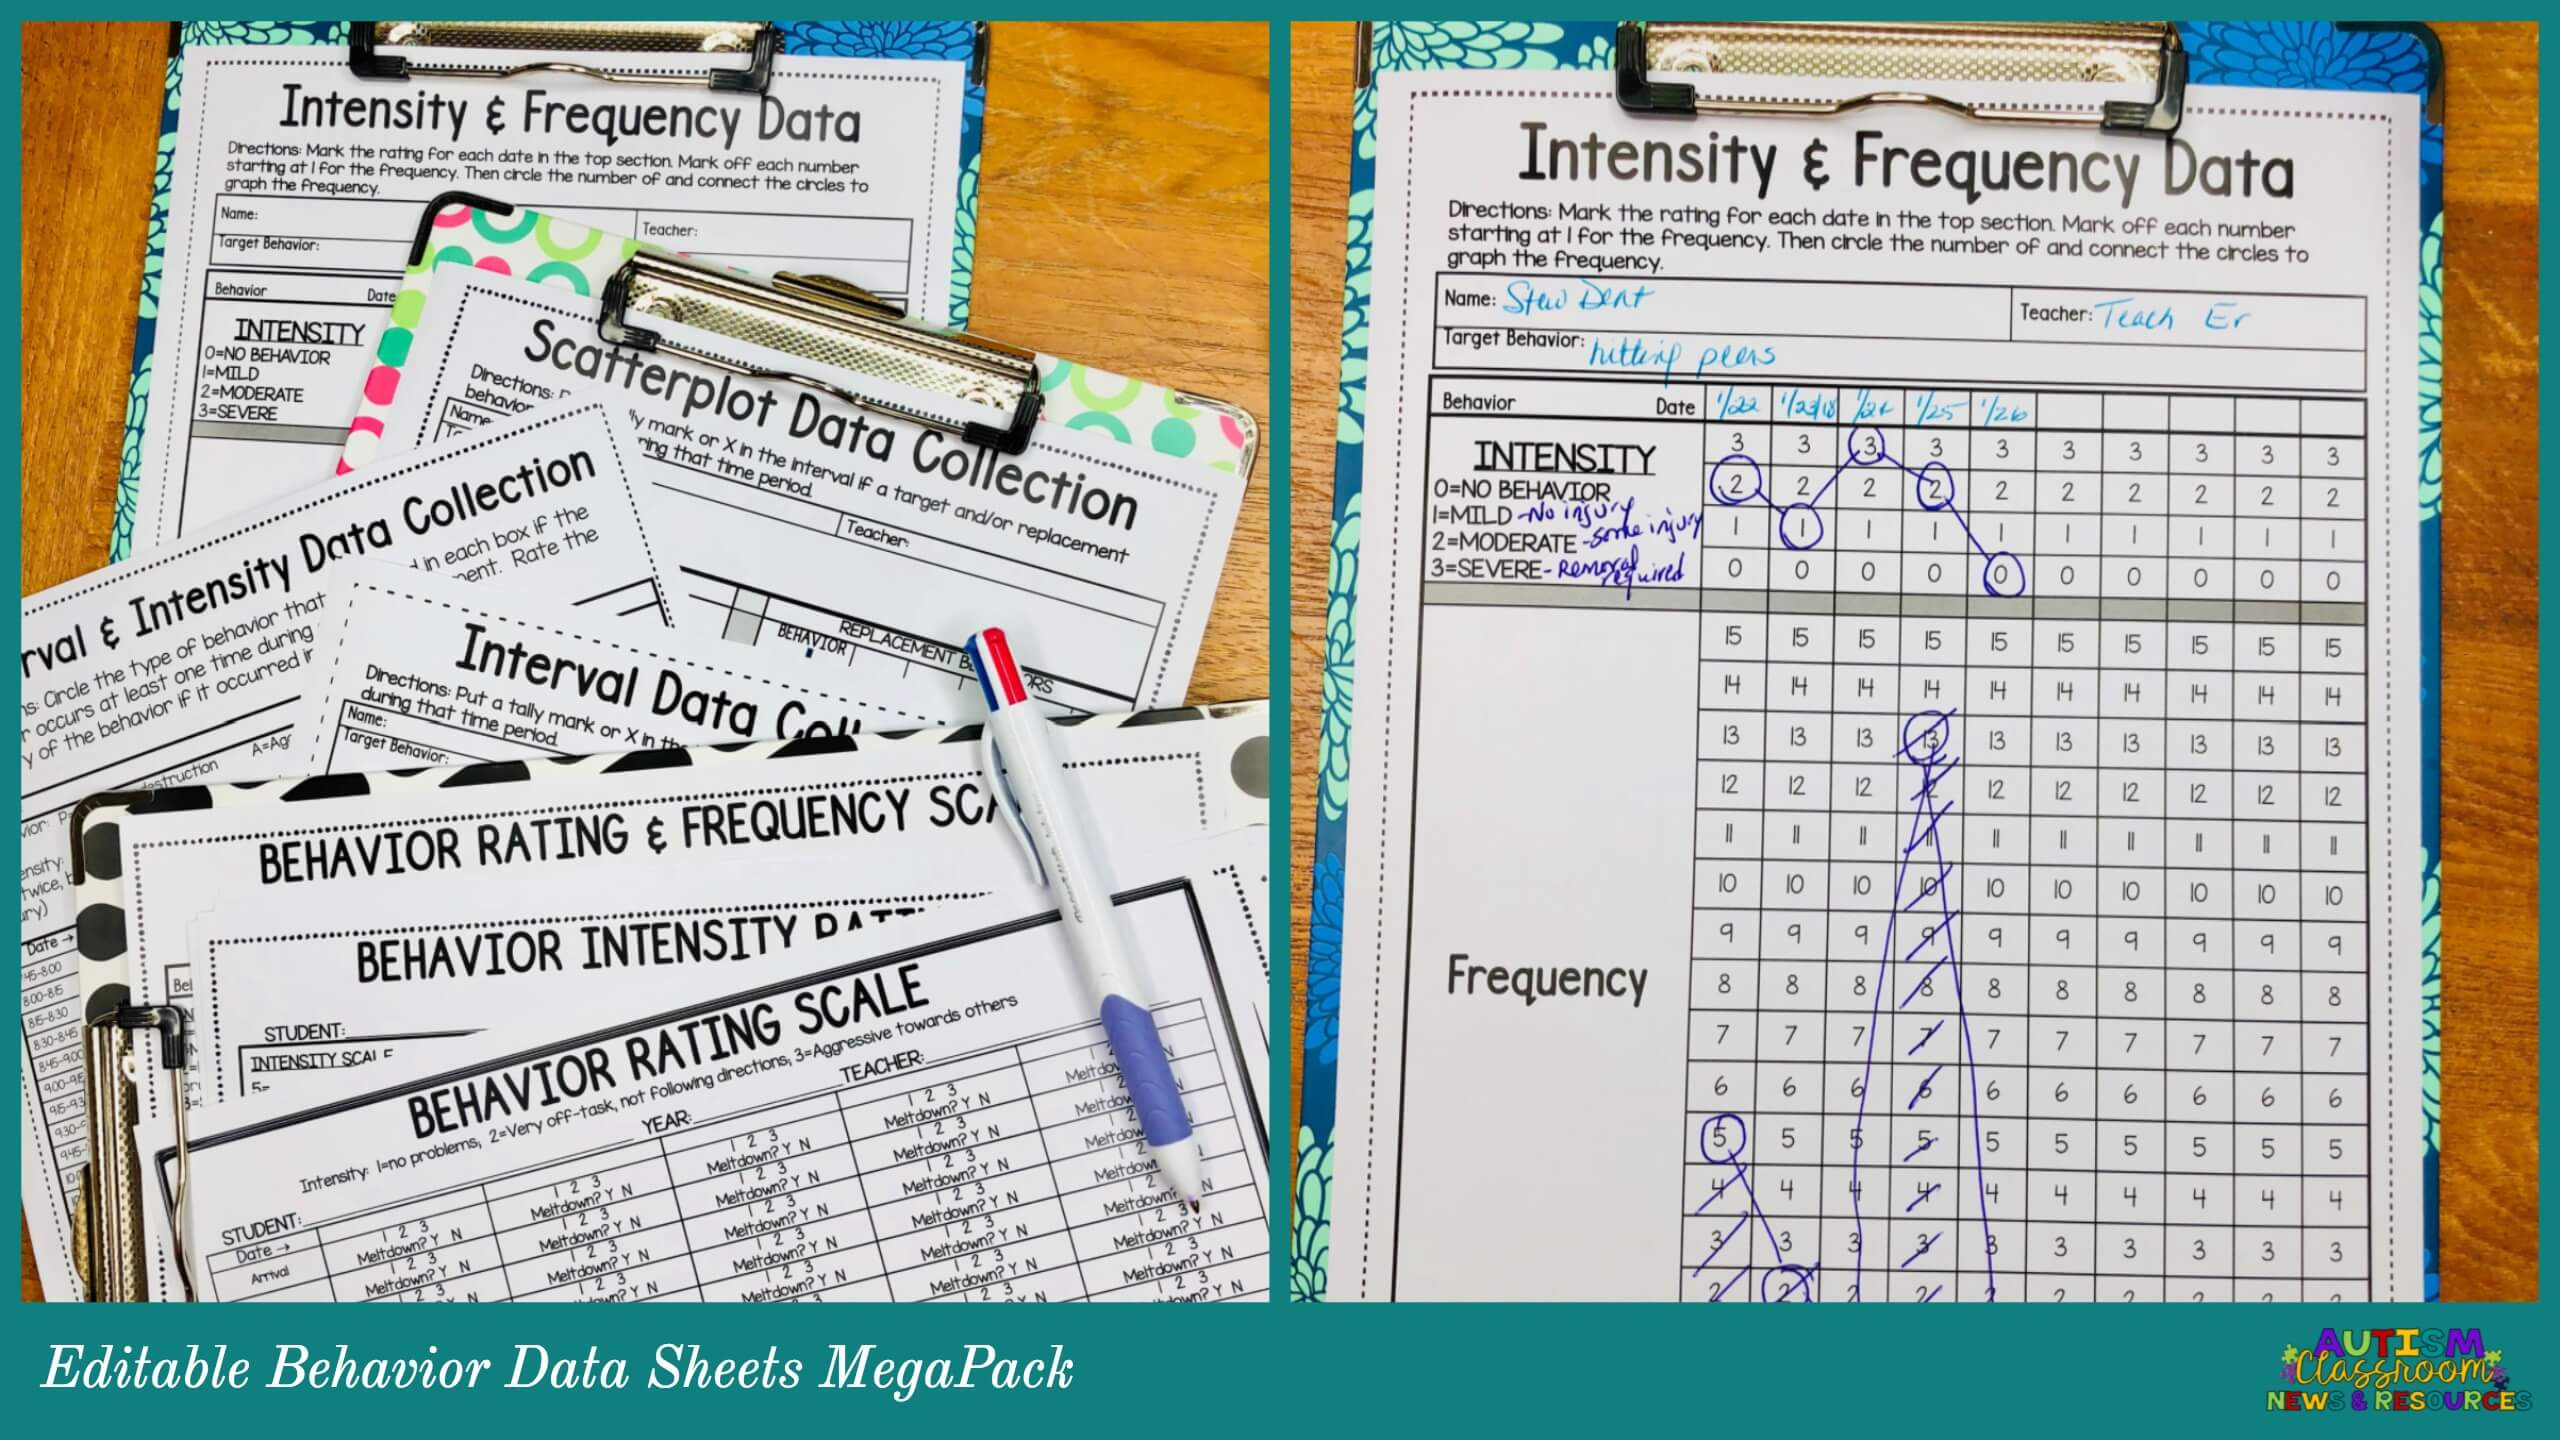 Editable behavior data sheets for frequency, intensity, and interval data